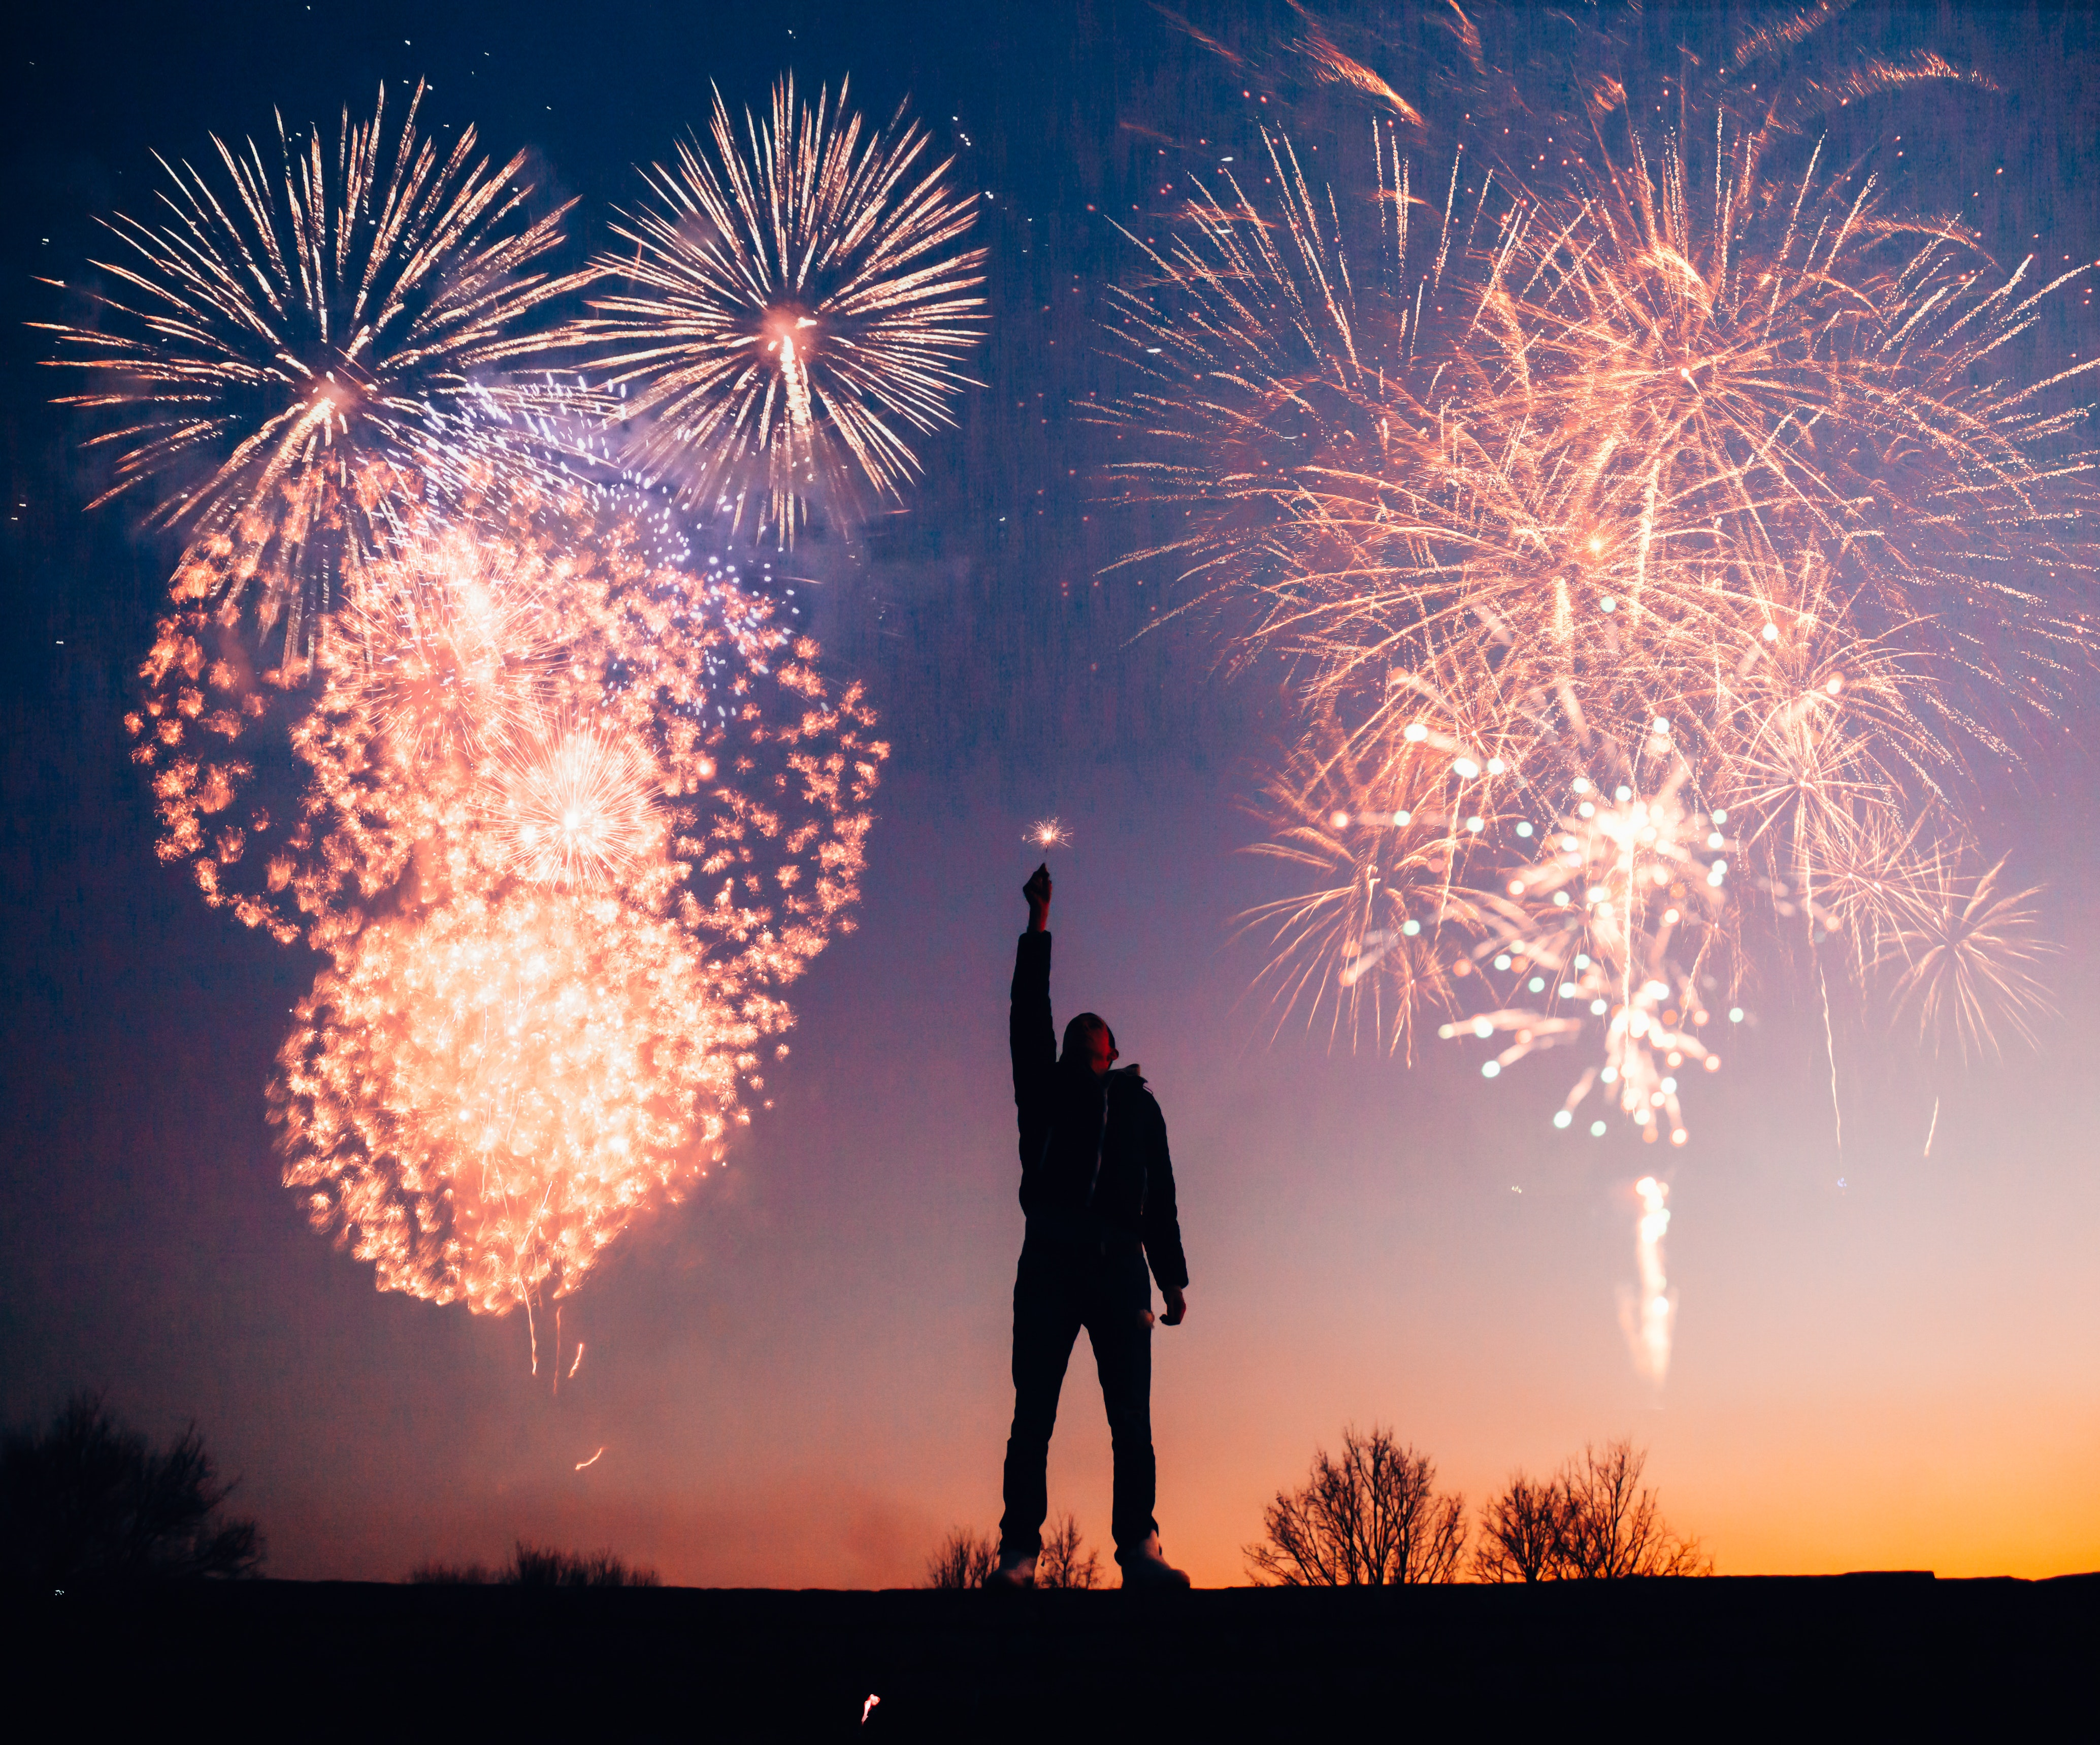 man with fireworks free stock photo